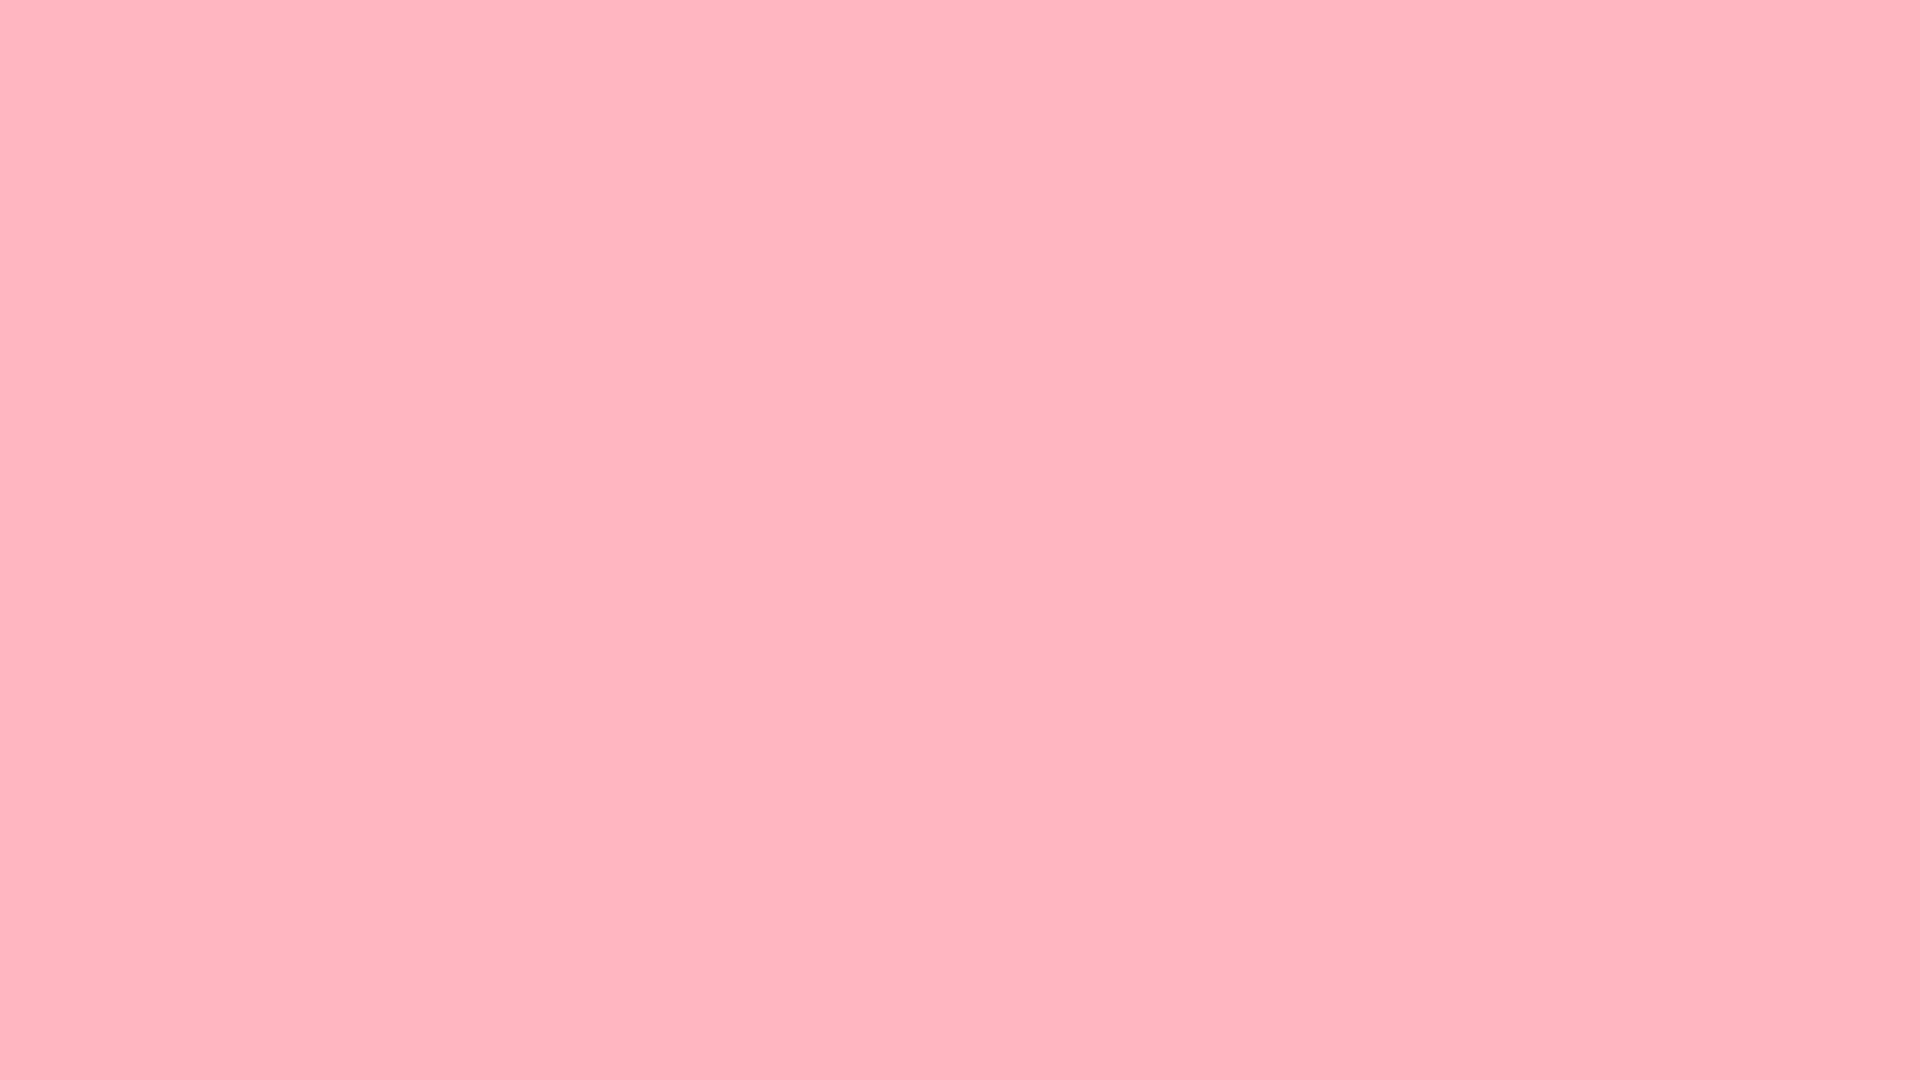 1920x1080 Light Pink Solid Color Background